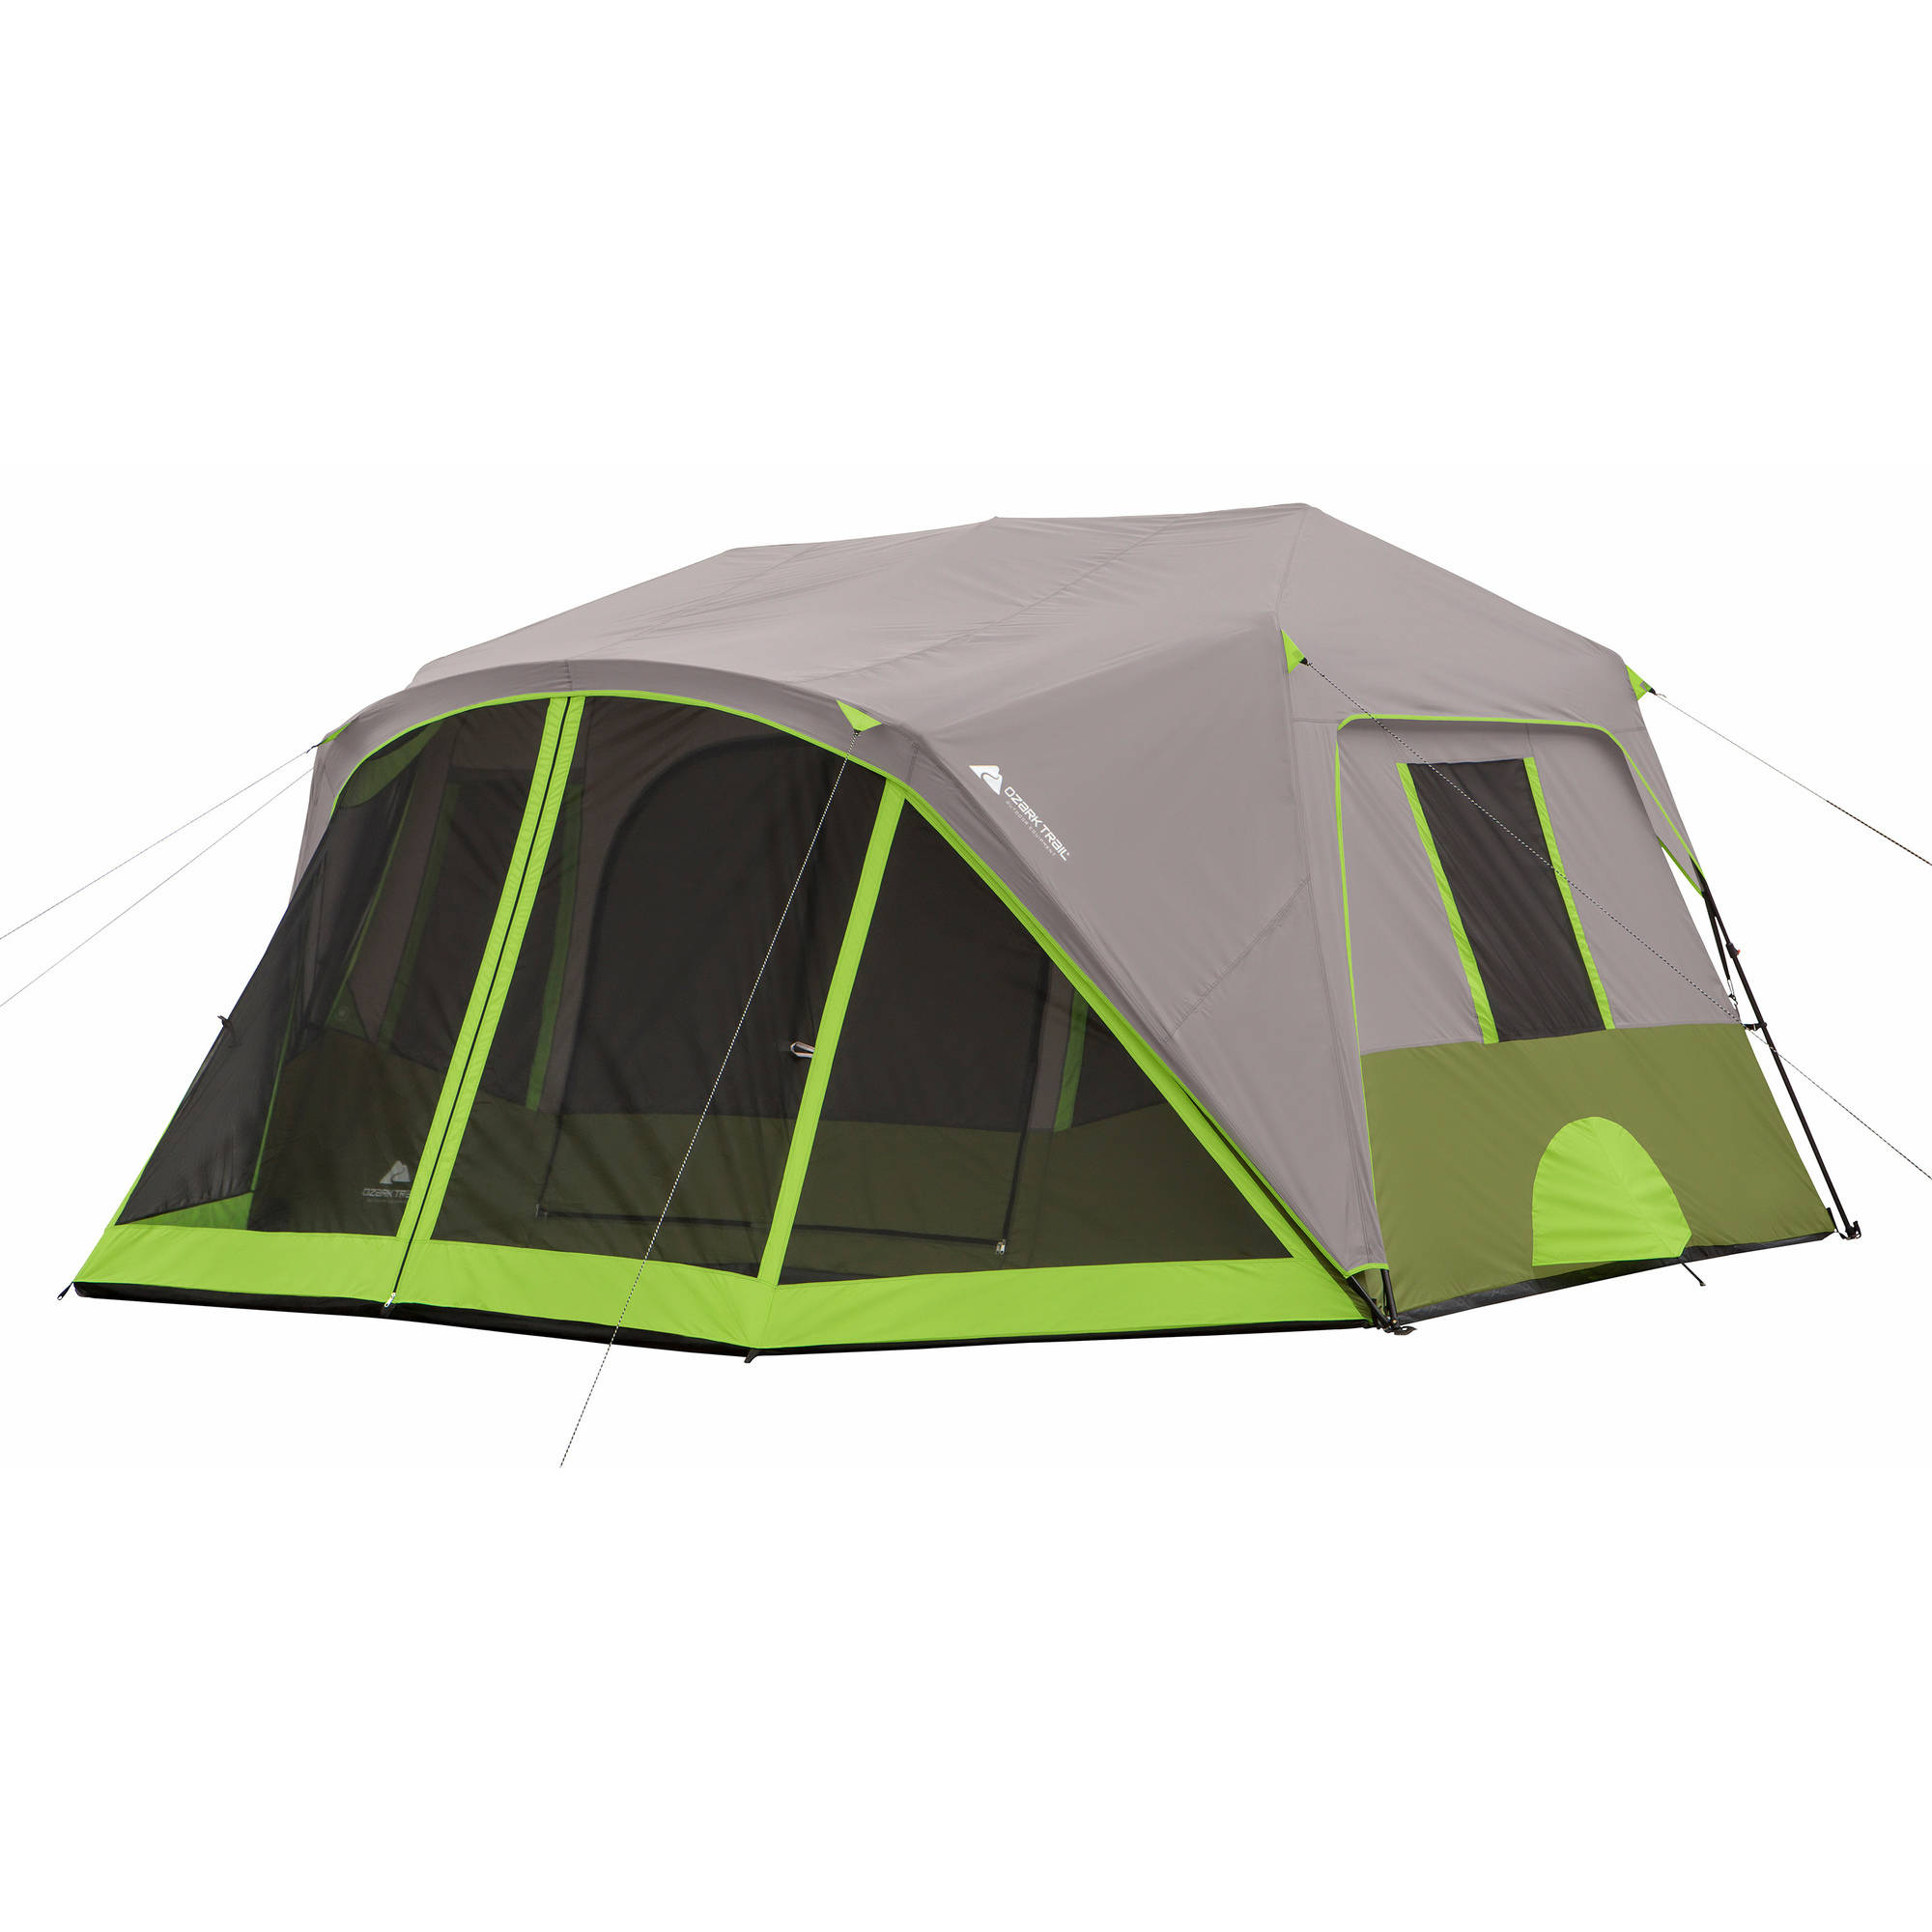 Ozark Trail 9 Person 2 Room Instant Cabin Tent with Screen Room - Walmart.com  sc 1 st  Walmart : tent with screen room - memphite.com